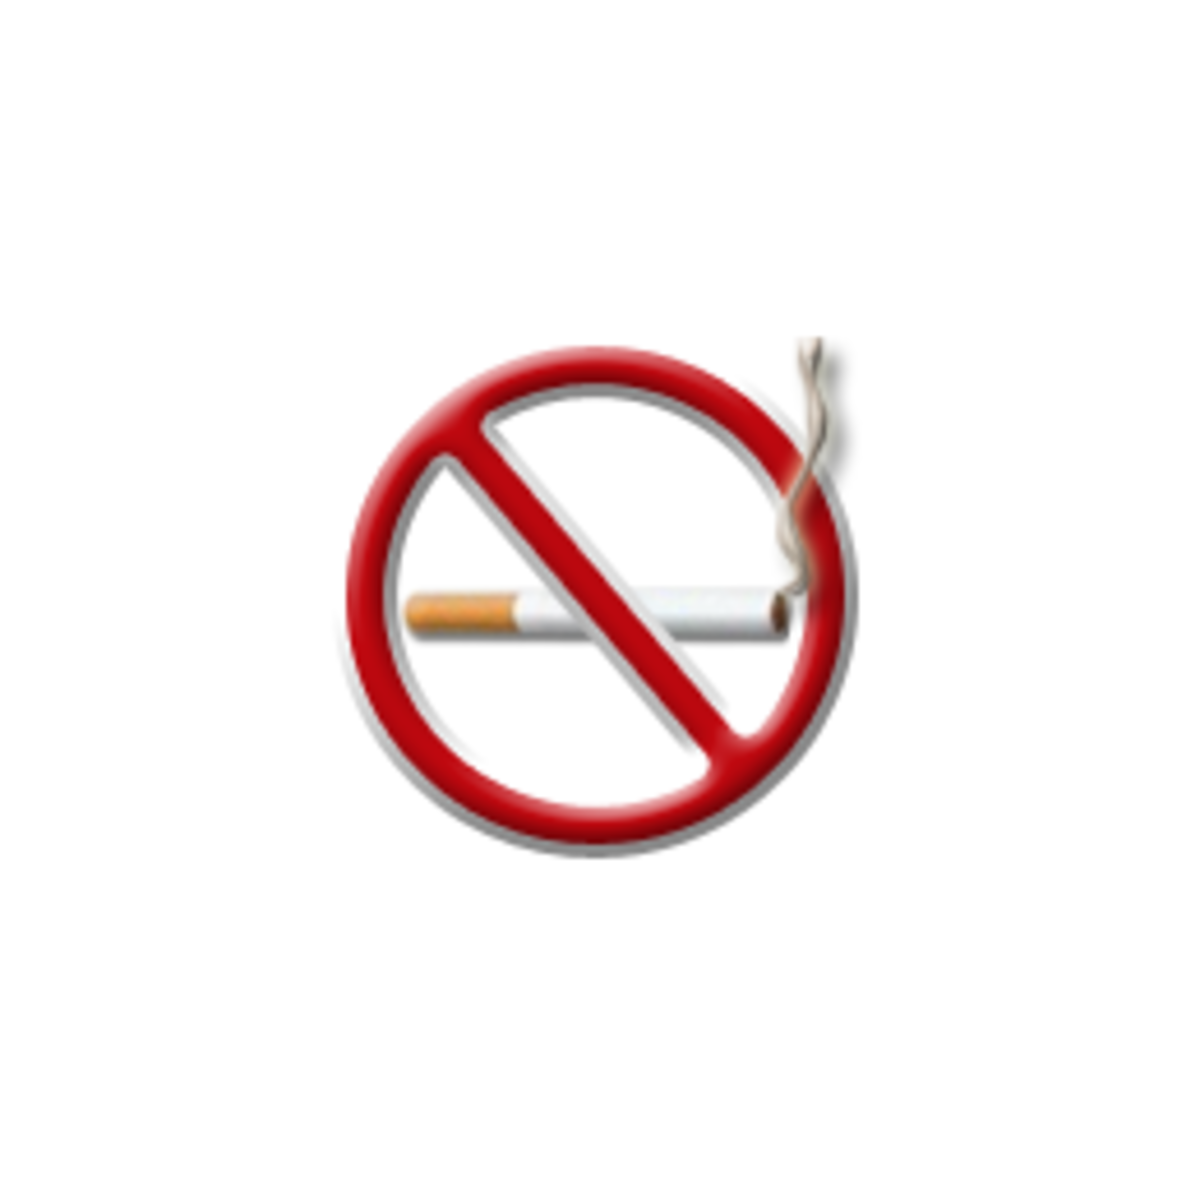 Smoking should be banned in ALL public places